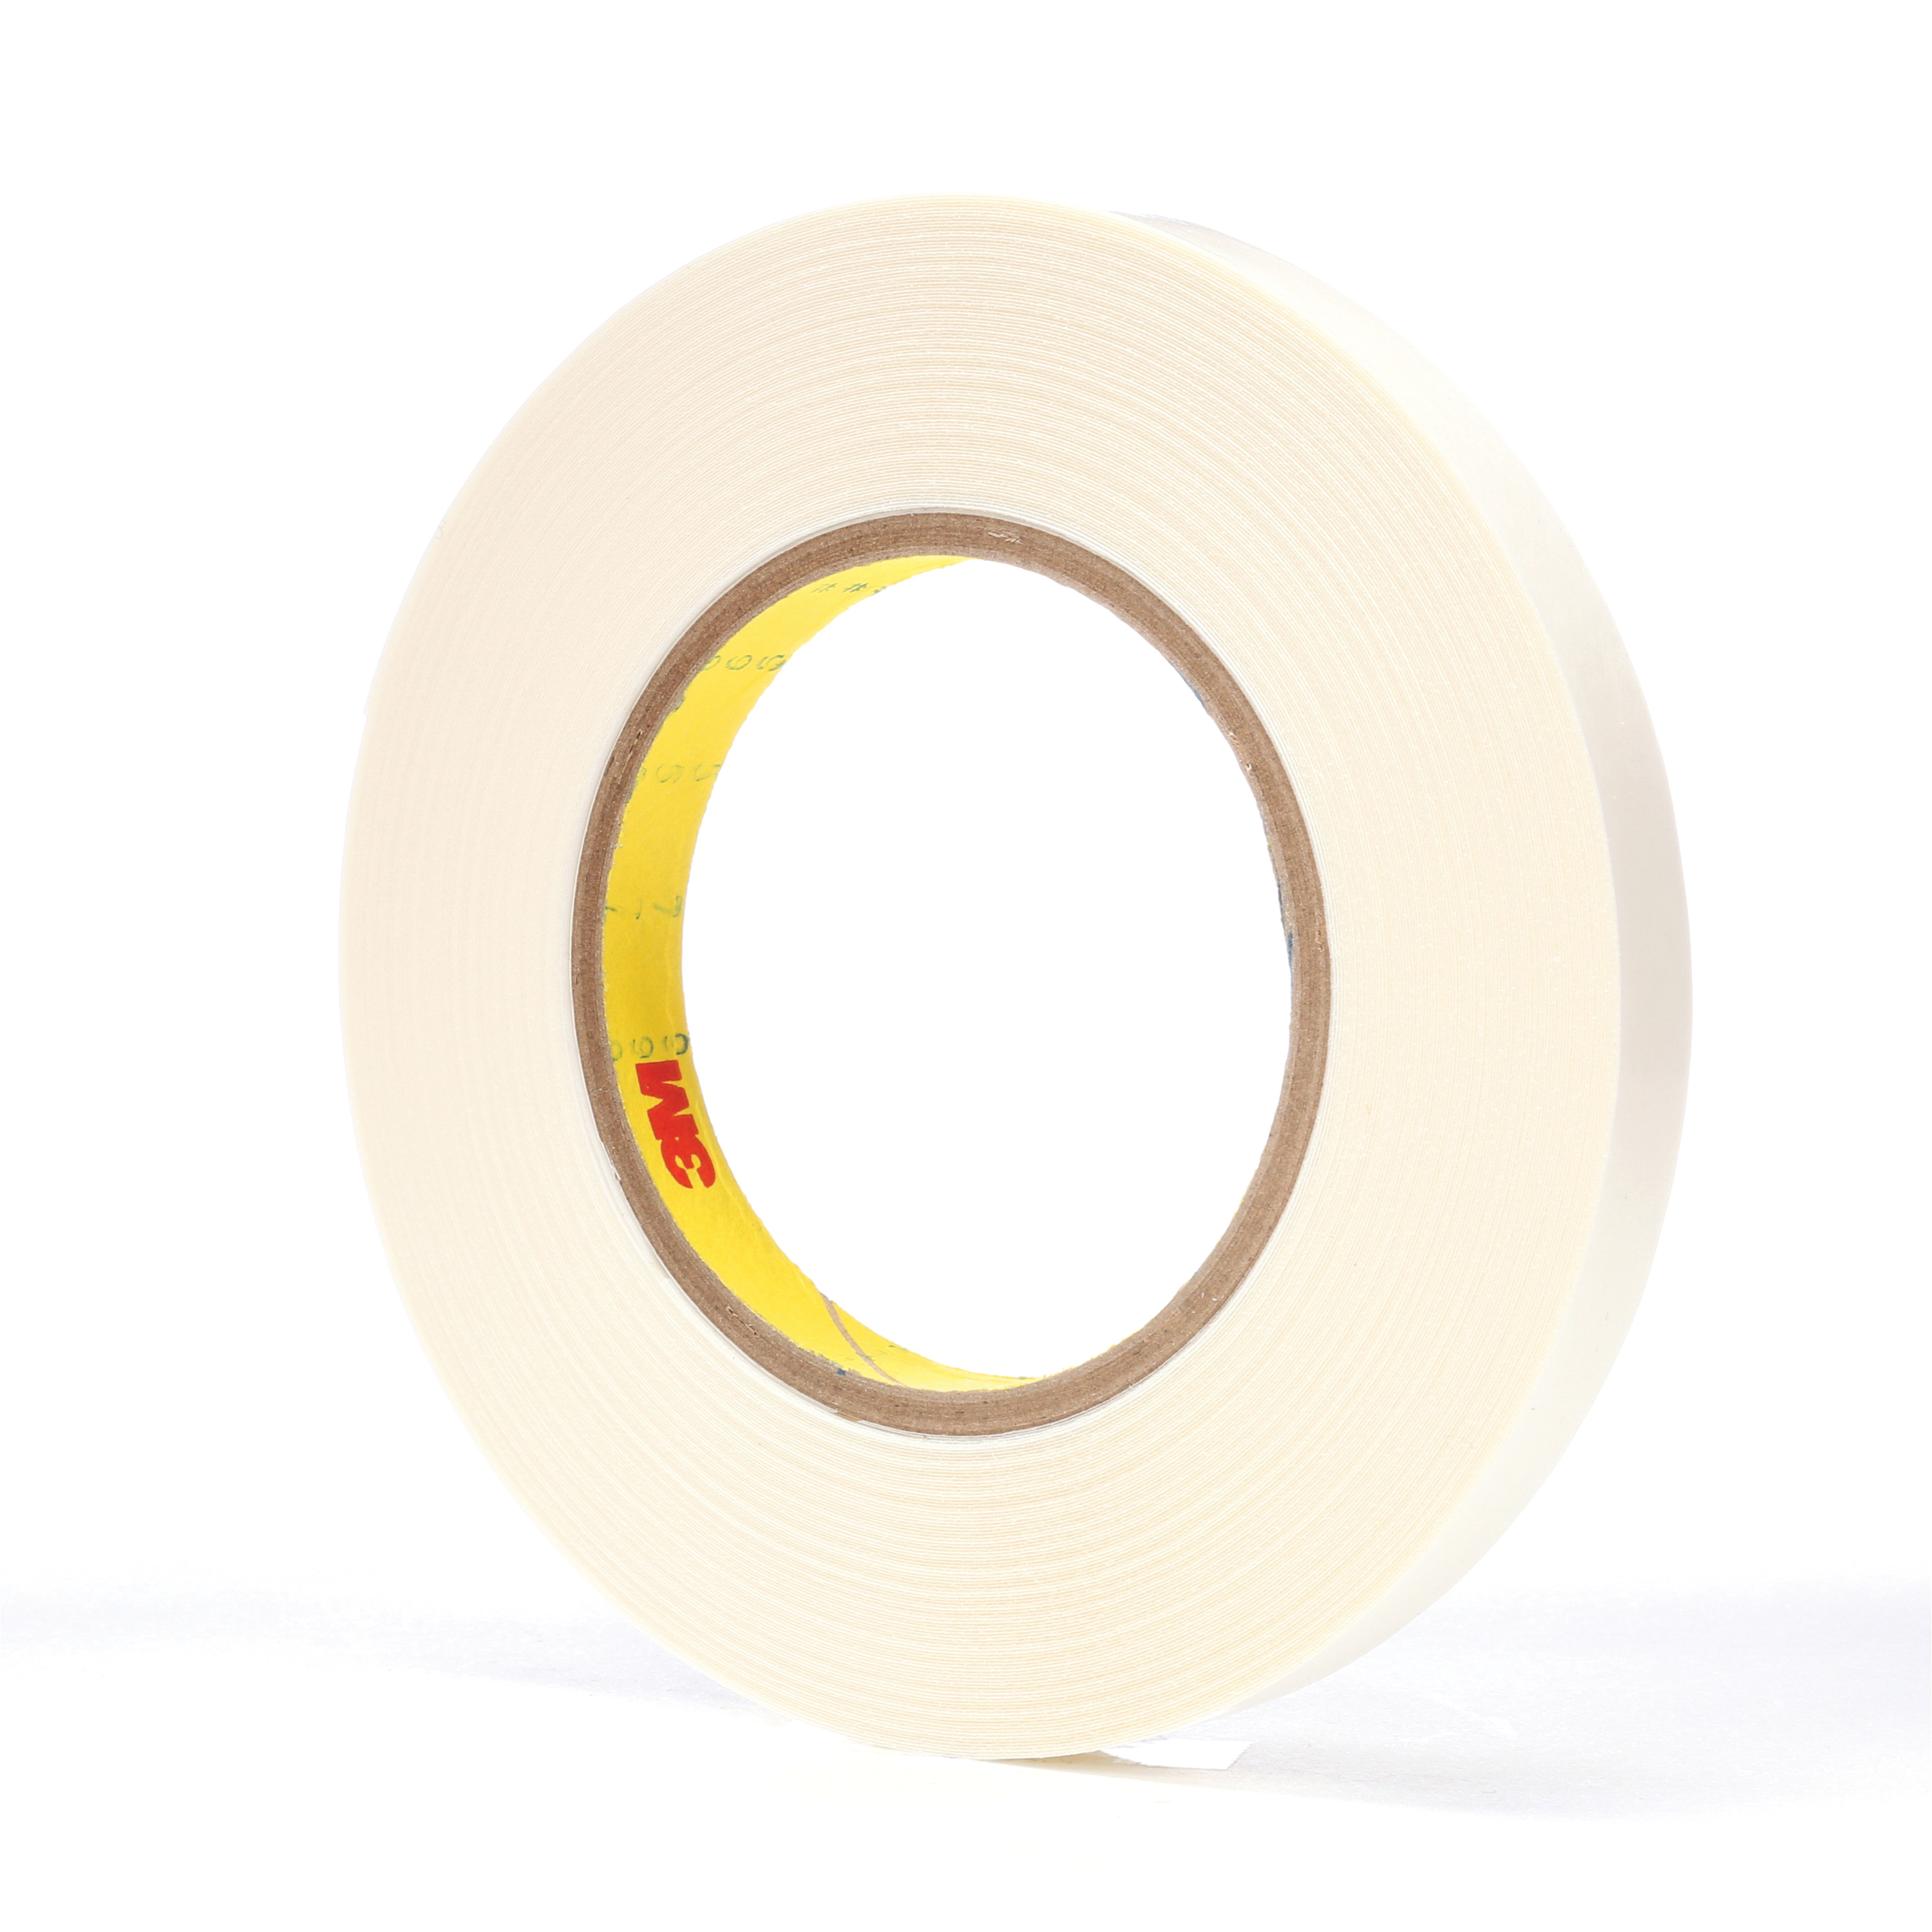 3M™ 021200-65873 Double Coated Tape, 36 yd L x 1/2 in W, 9 mil THK, Synthetic Rubber Adhesive, Polyethylene Backing, White